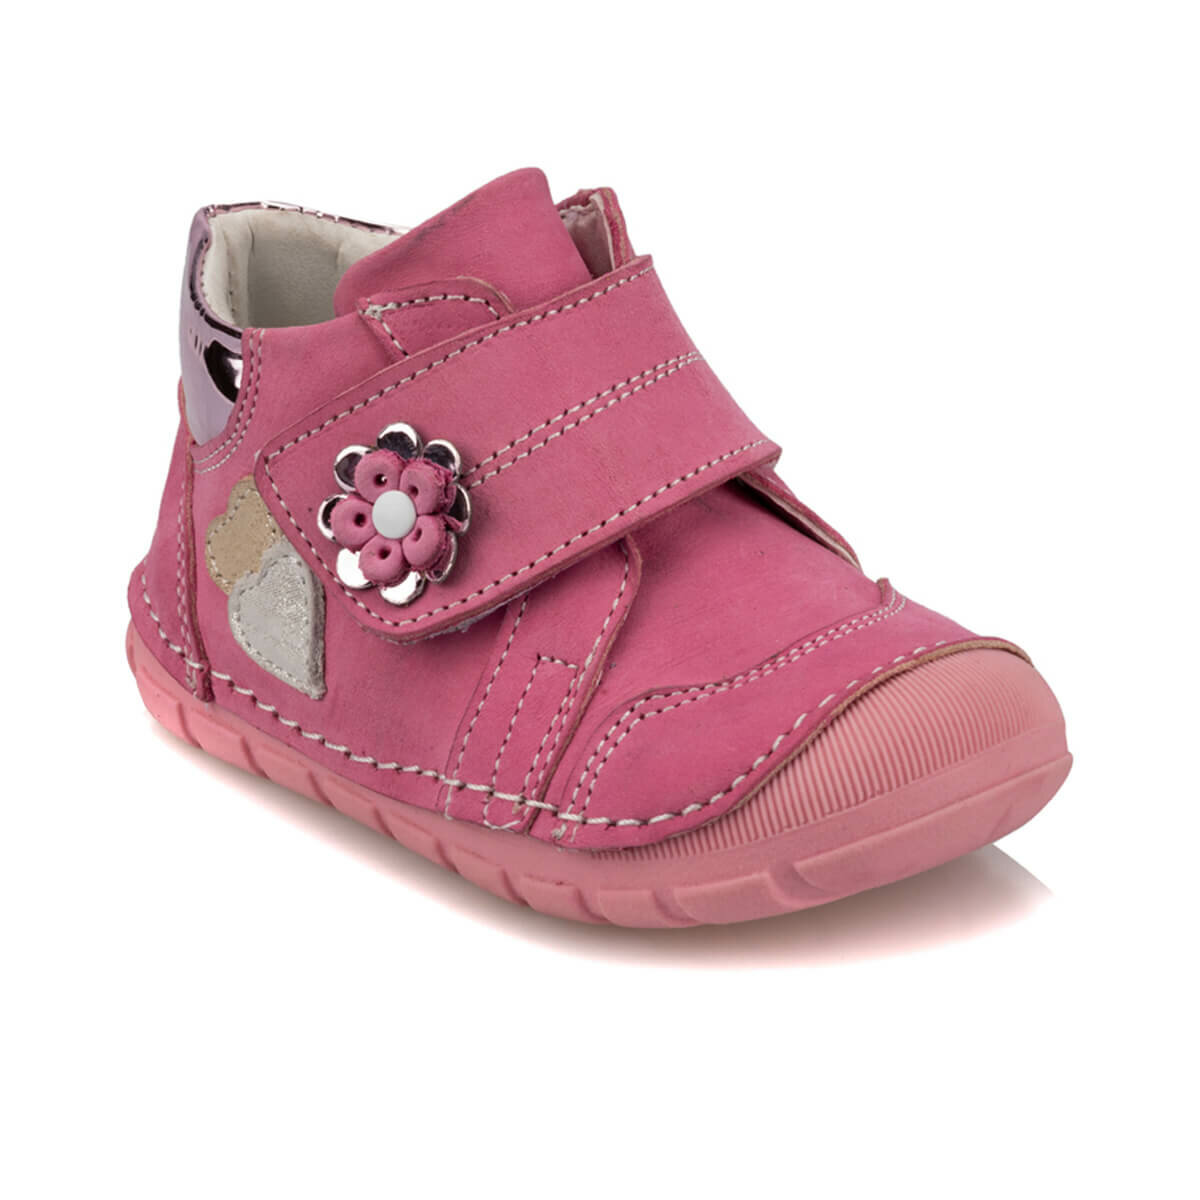 FLO 92.511740.I Pink Female Child Sneaker Shoes Polaris